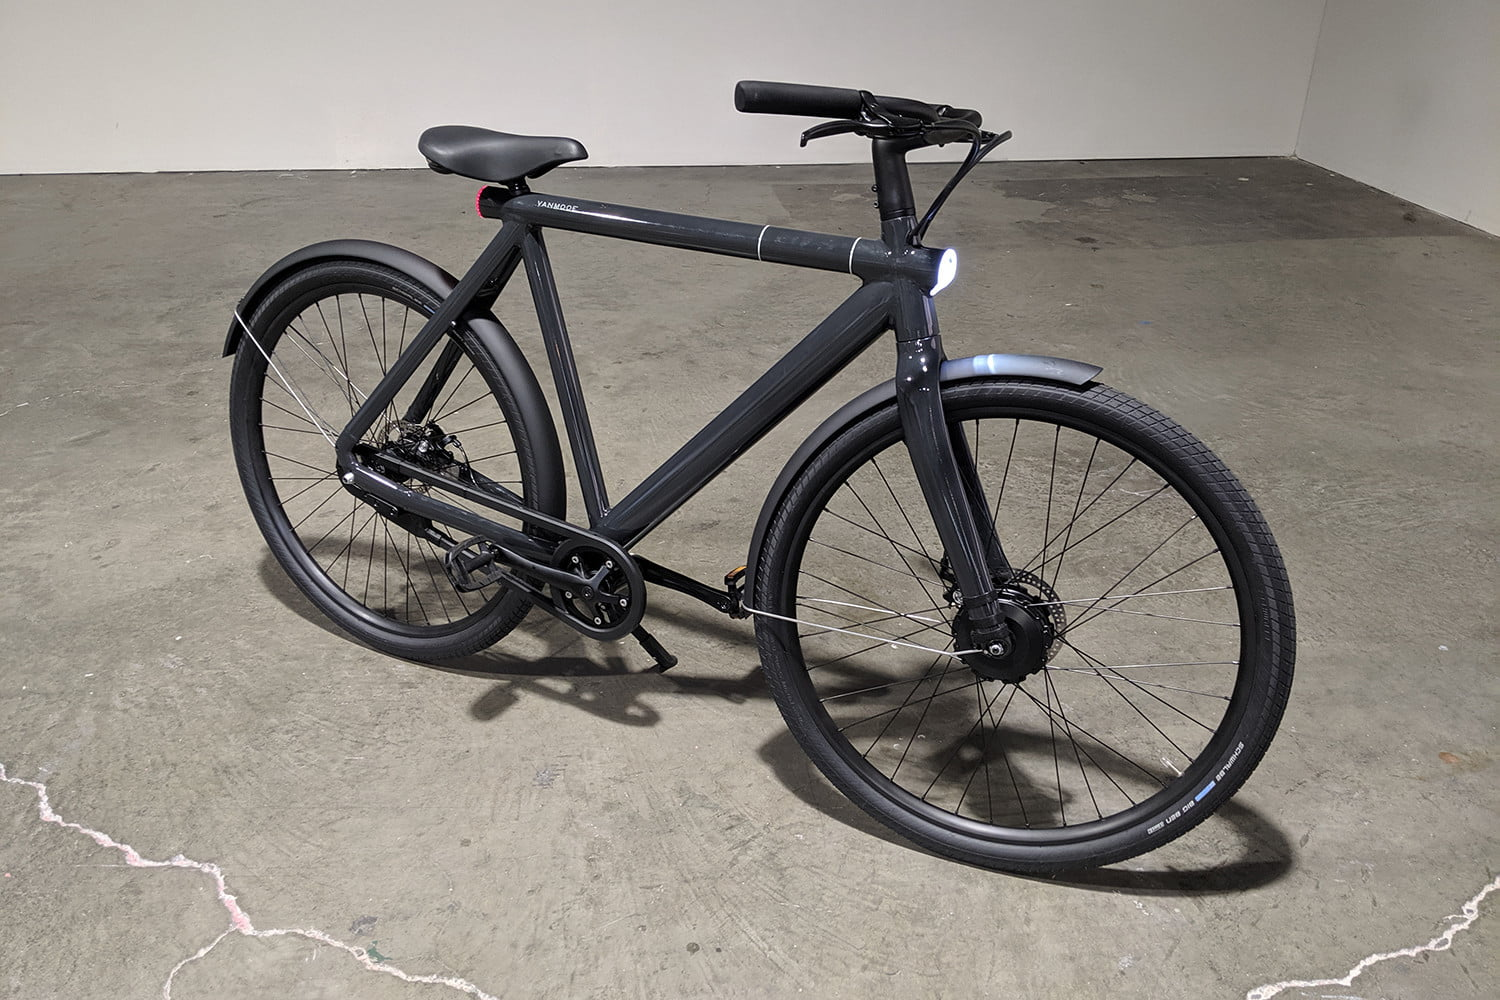 The VanMoof S3 Ebike Isn't That Easy to Steal  Here's What Happened